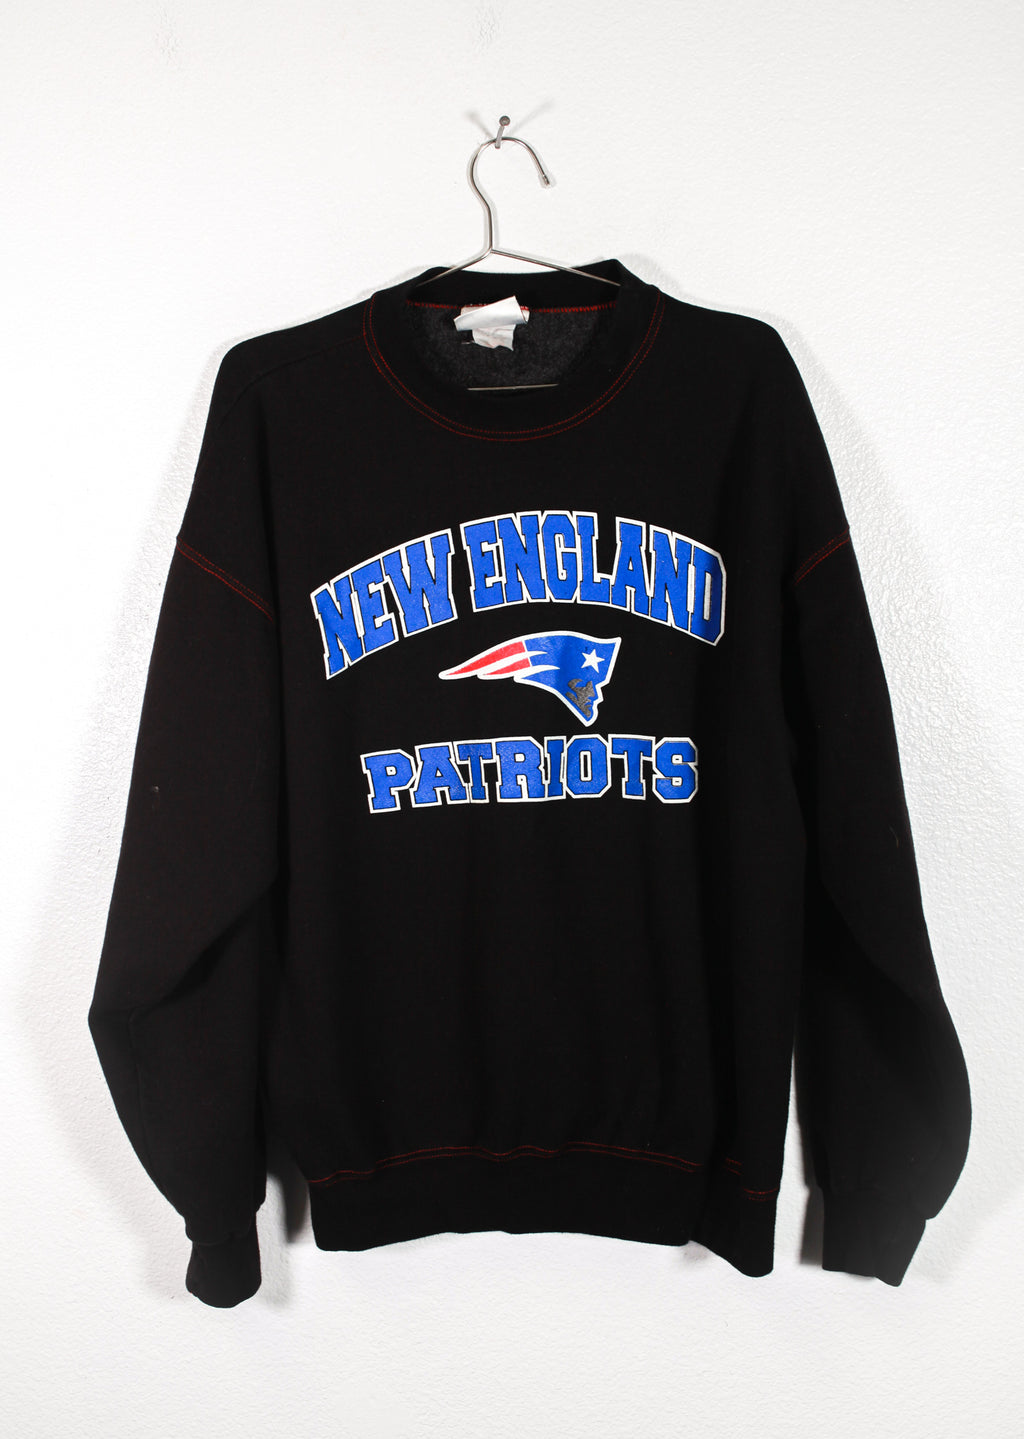 New England Patriots Sweatshirt